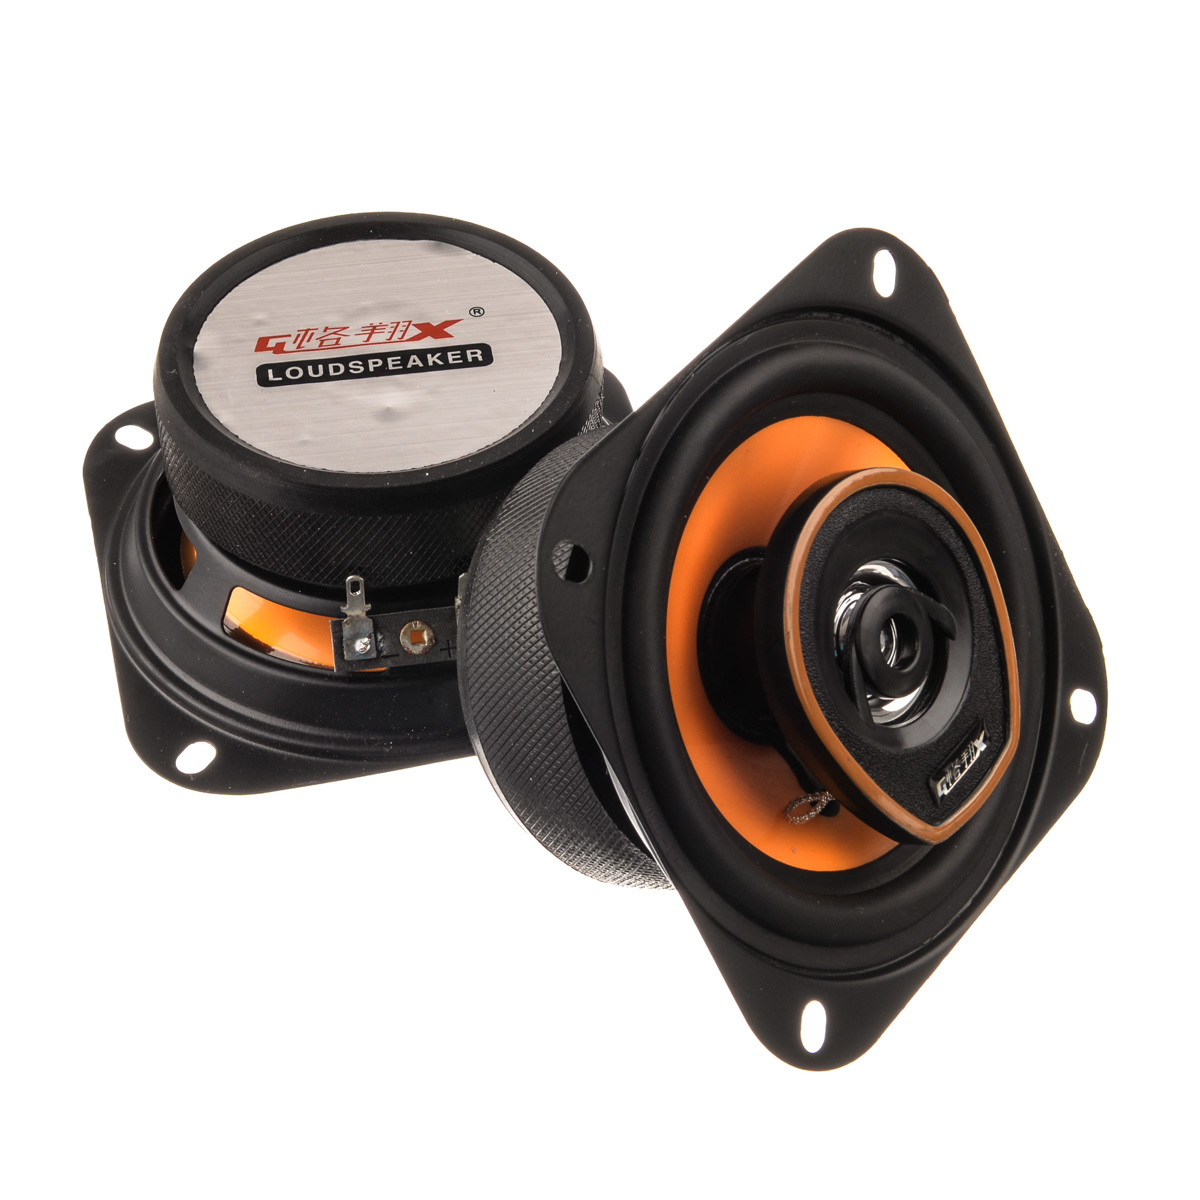 2x 5.5inch coaxial car speaker hot sale audio speaker universal all carperfect sound horn speakers YA163(China (Mainland))